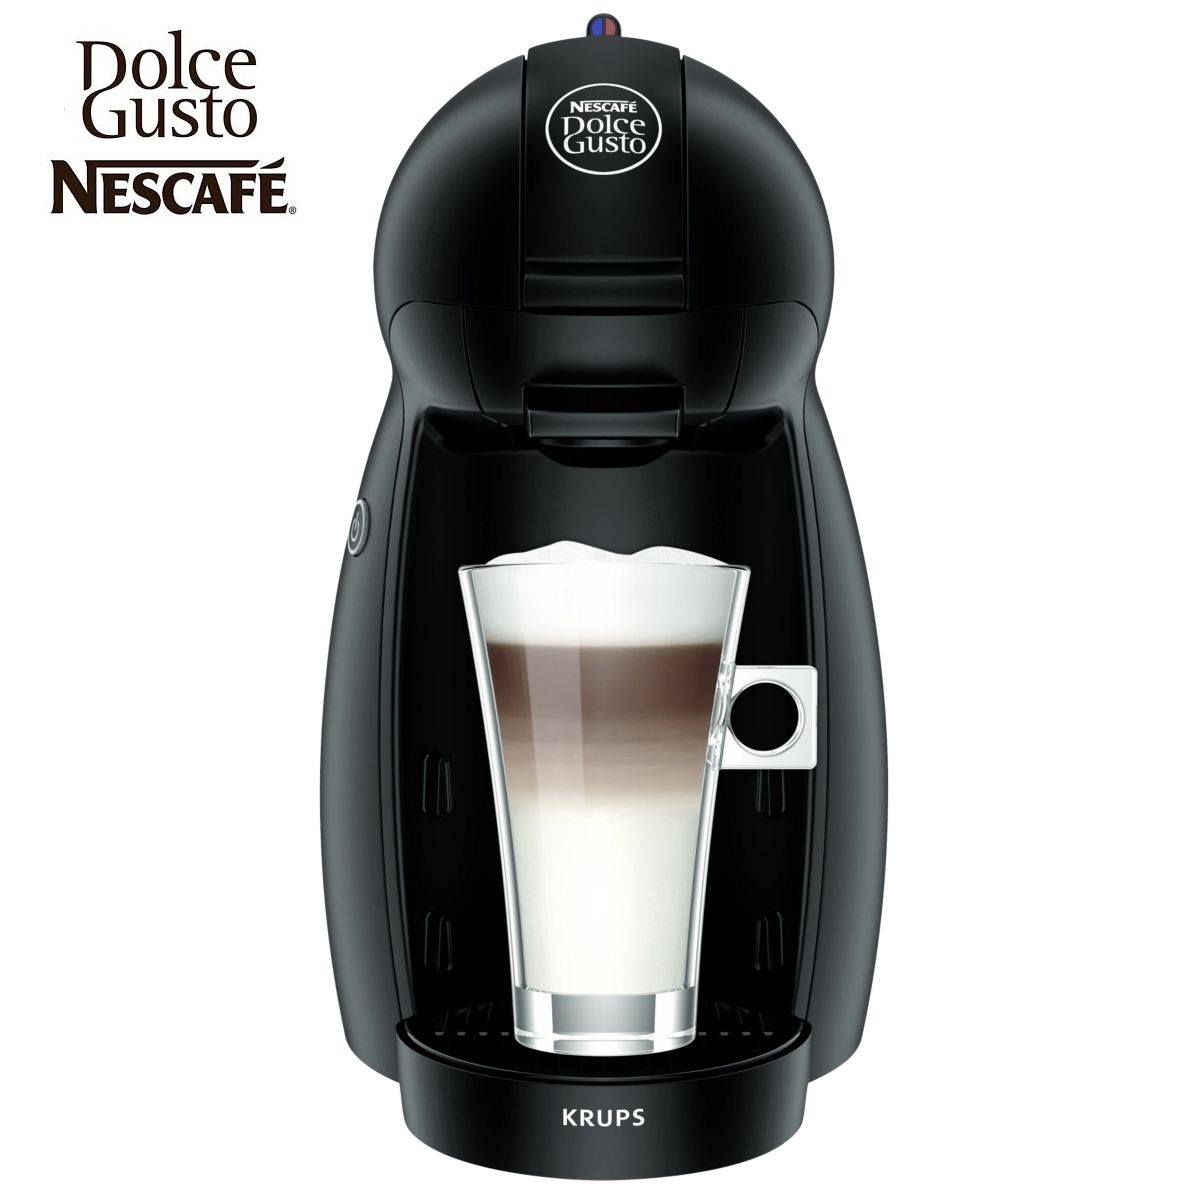 krups nescafe dolce gusto piccolo black multi drink coffee. Black Bedroom Furniture Sets. Home Design Ideas